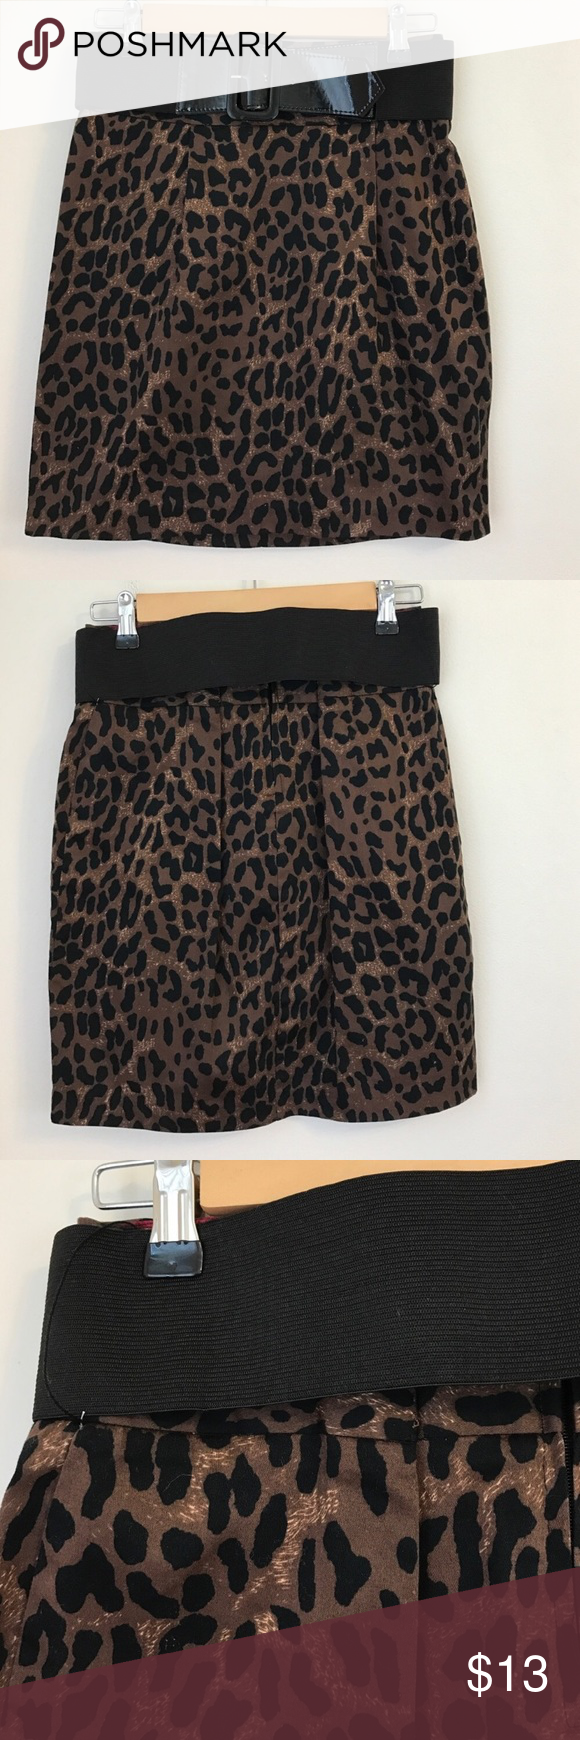 Belted Animal Print Skirt Belted Animal Print Skirt - Back Zip Closure - Excellent Used Condition - Offers Welcomed Maurices Skirts